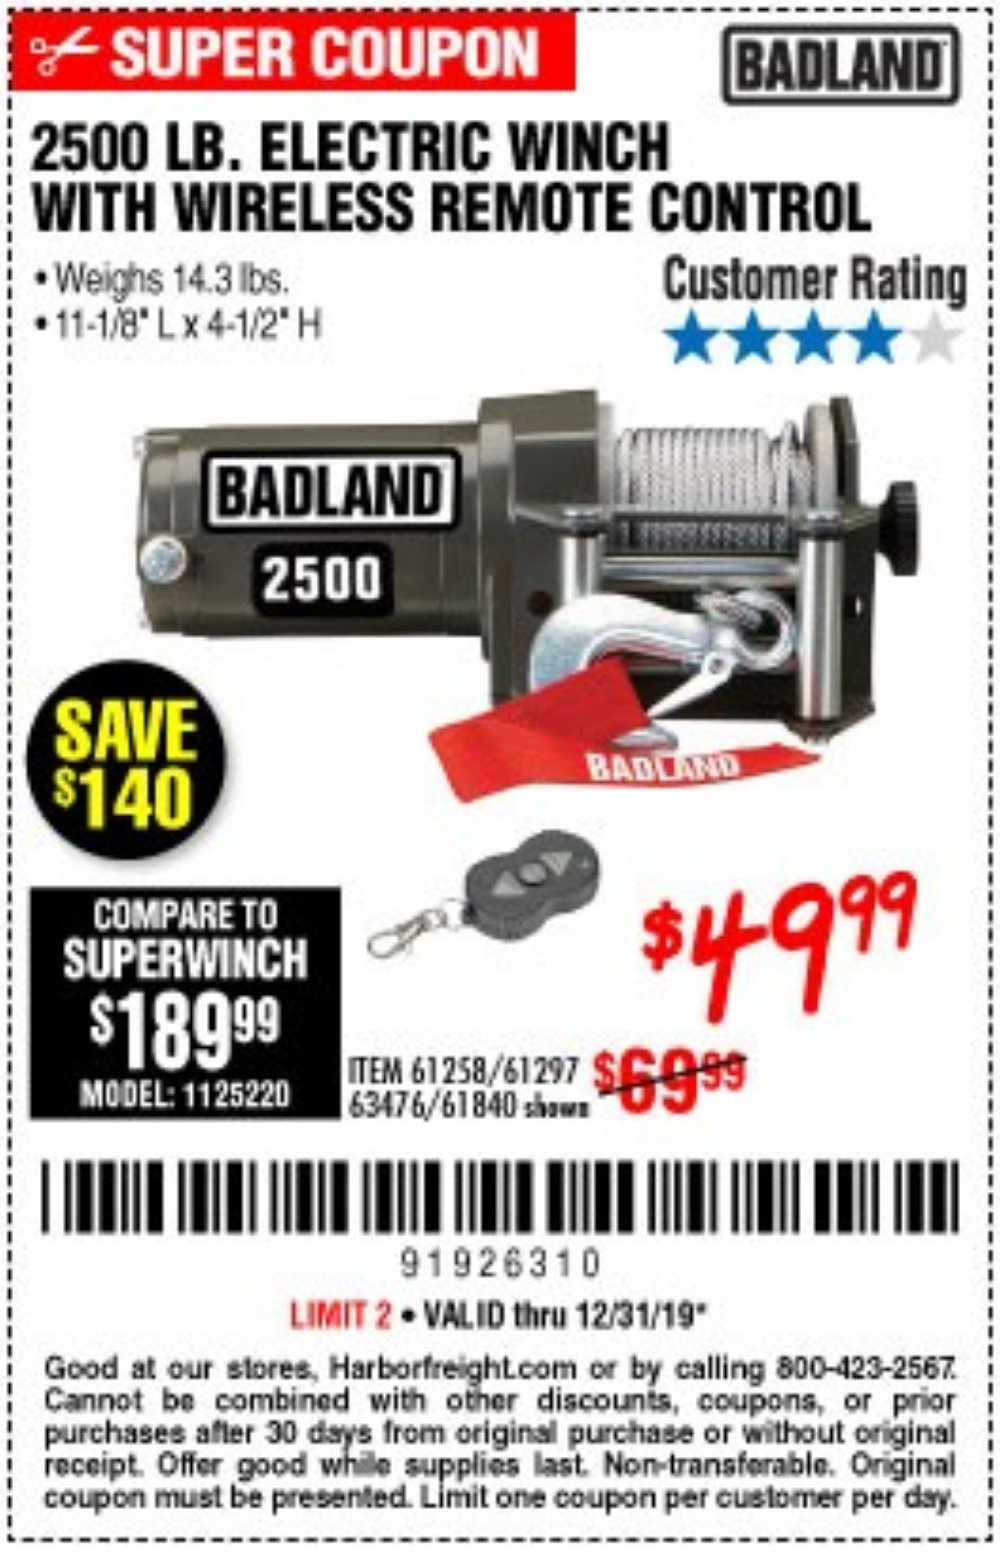 Harbor Freight Coupon, HF Coupons - 2500 Lb Electric Winch With Wireless Remote Control